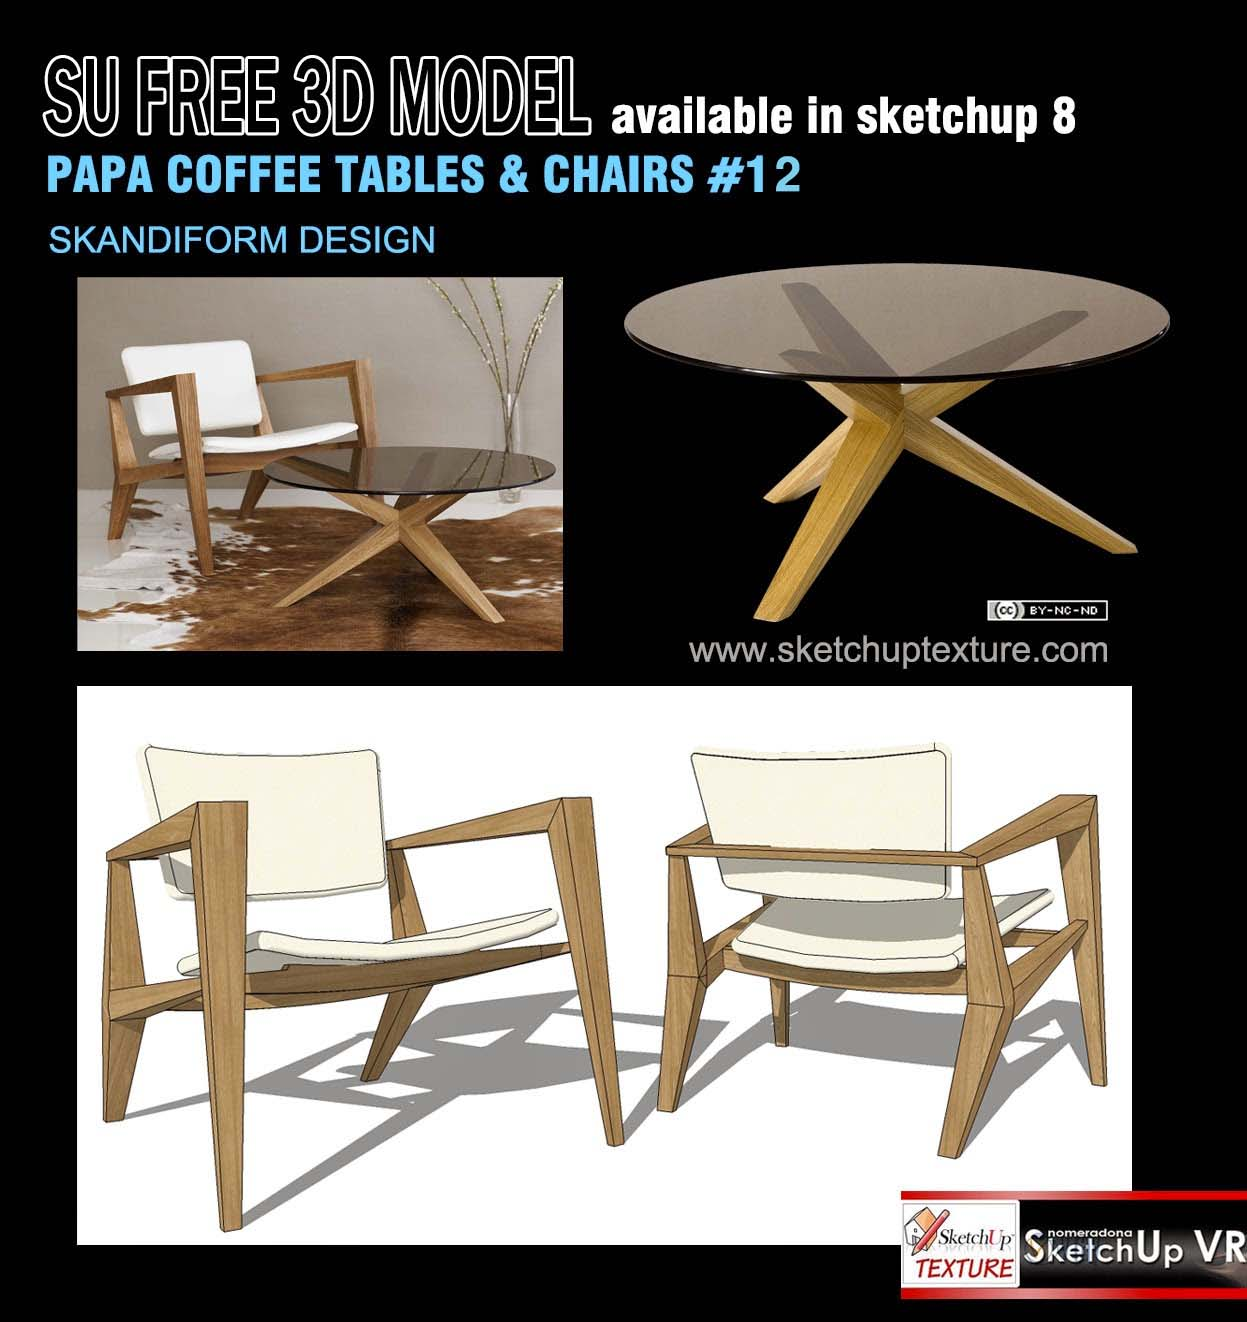 chair design sketchup jasper company texture free 3d model easy